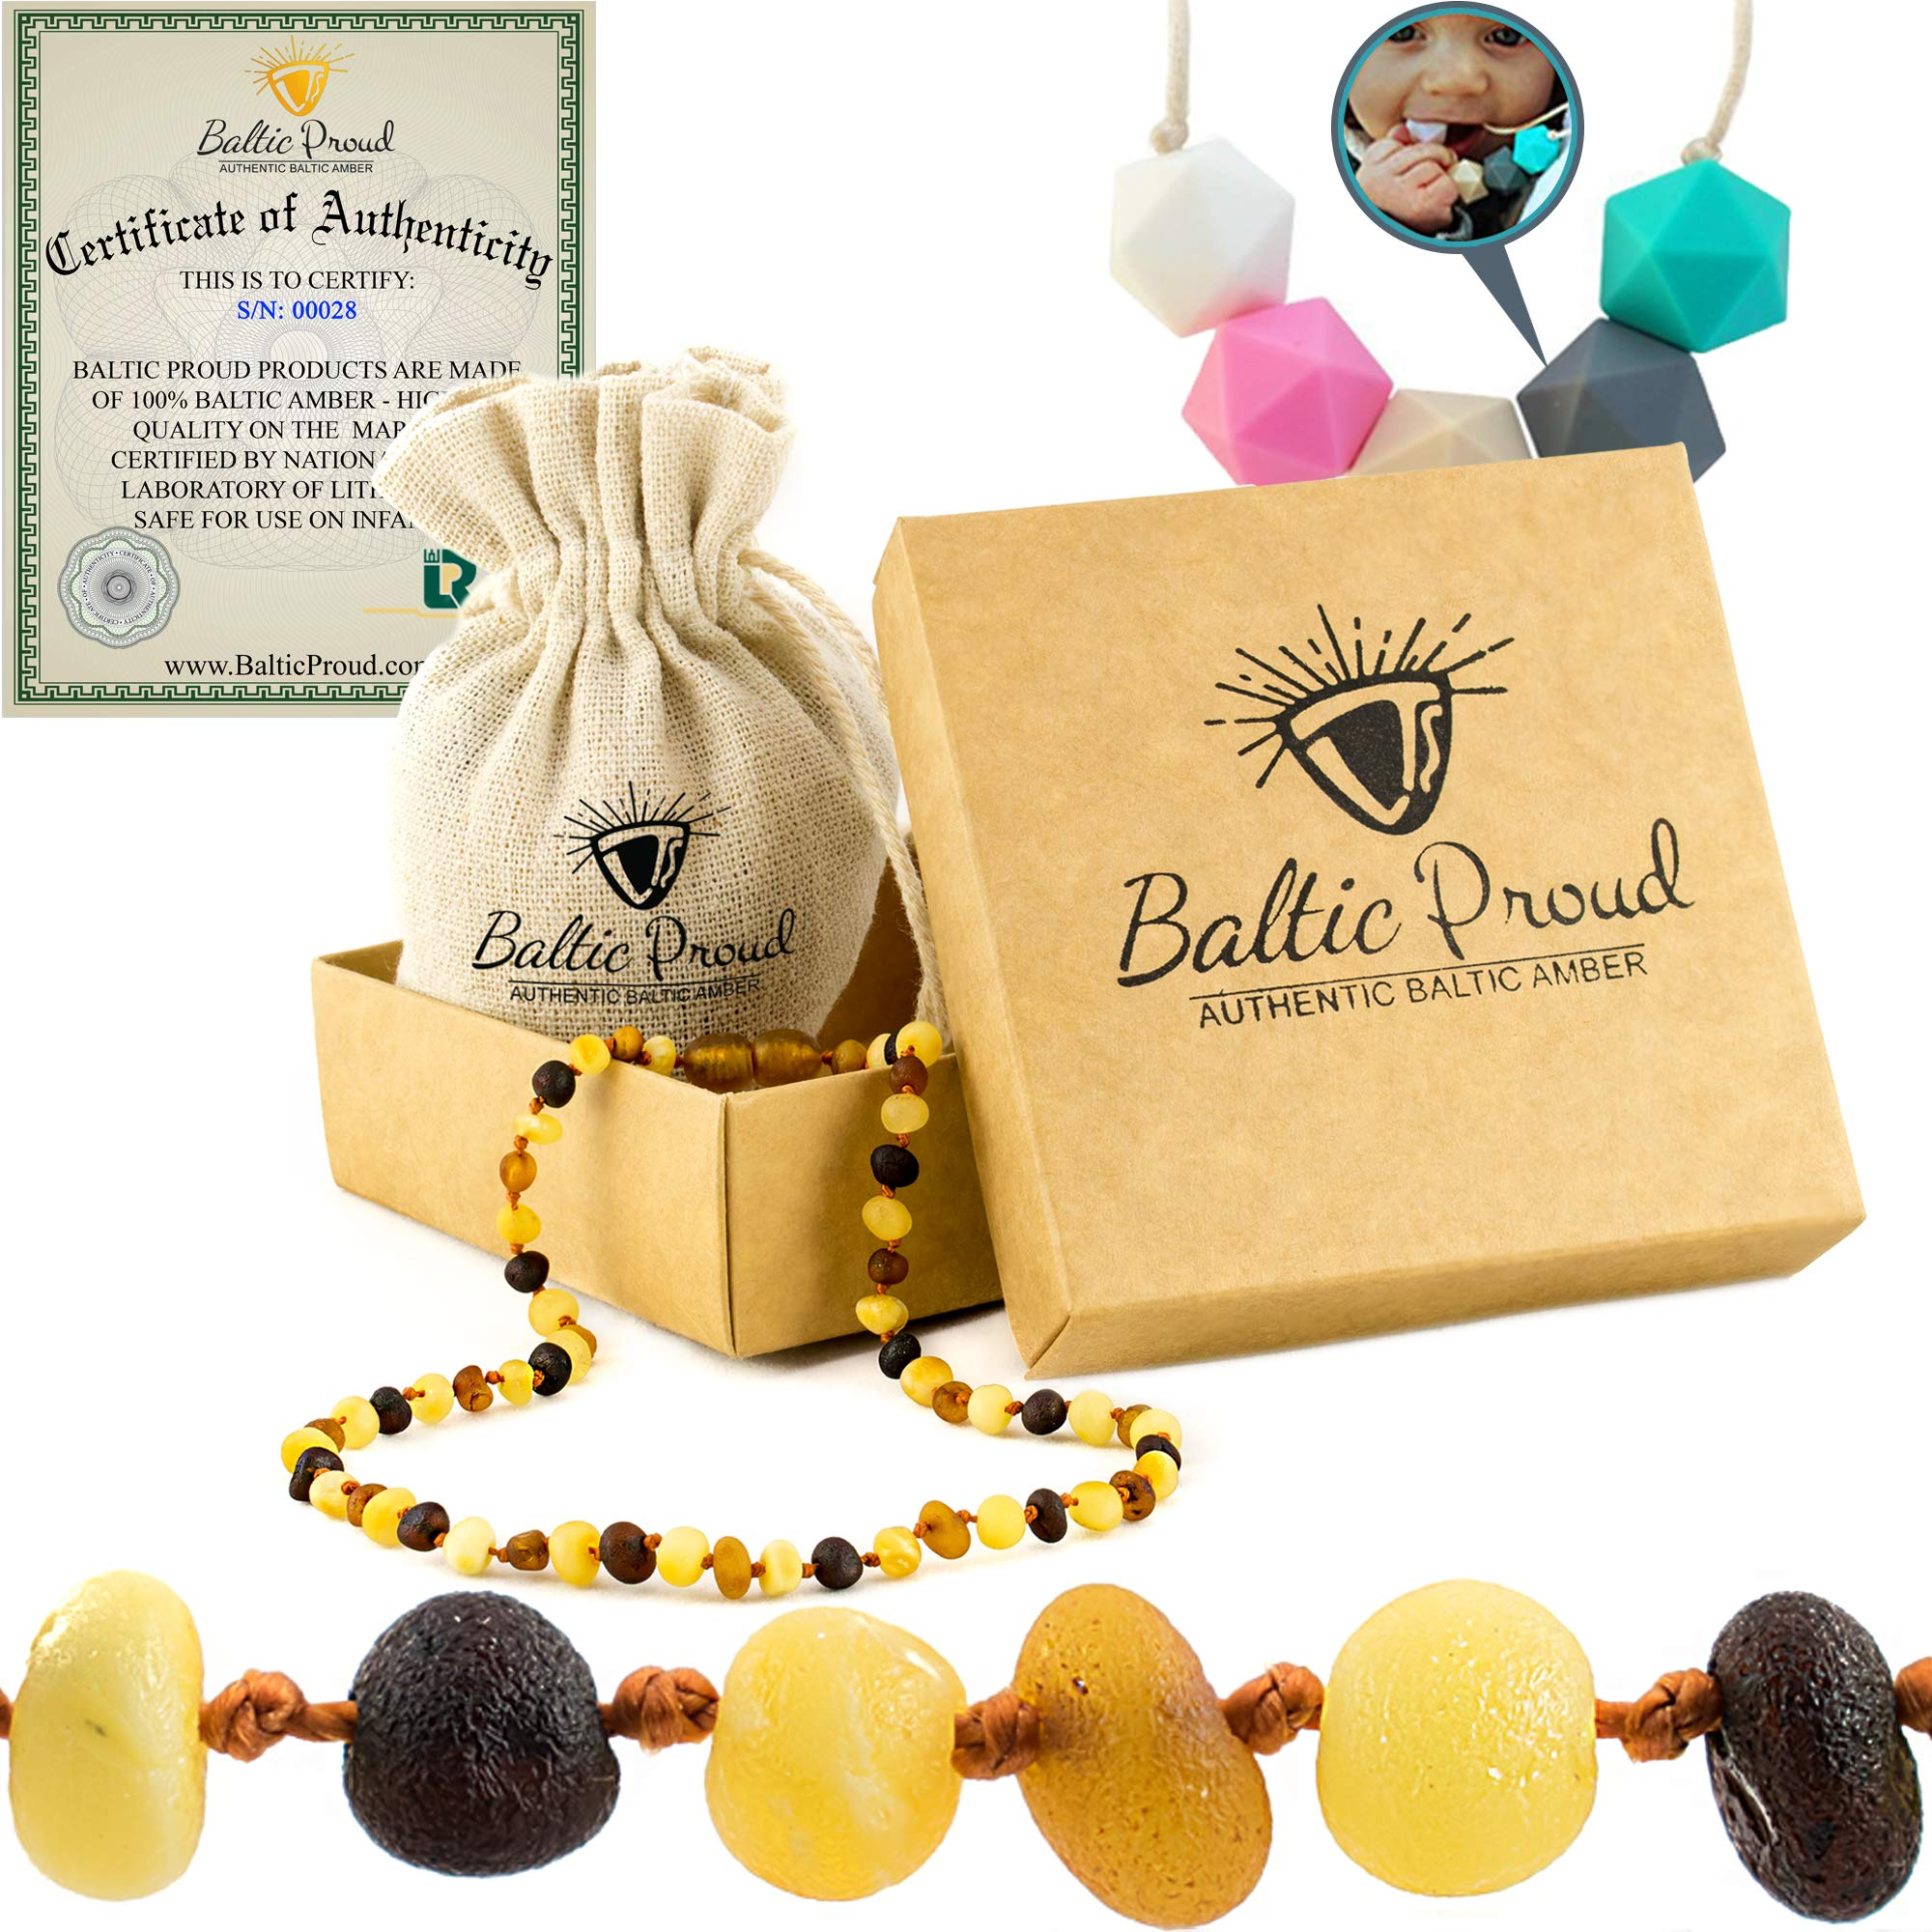 Amber Teething Necklace For Babies Gift Set (Unisex)(Multi Raw) + FREE Silicone Teething Necklace - Anti Inflammatory, Natural Drooling & Teething Pain Relief, Highest Quality, Certified Baltic Amber by Baltic Proud